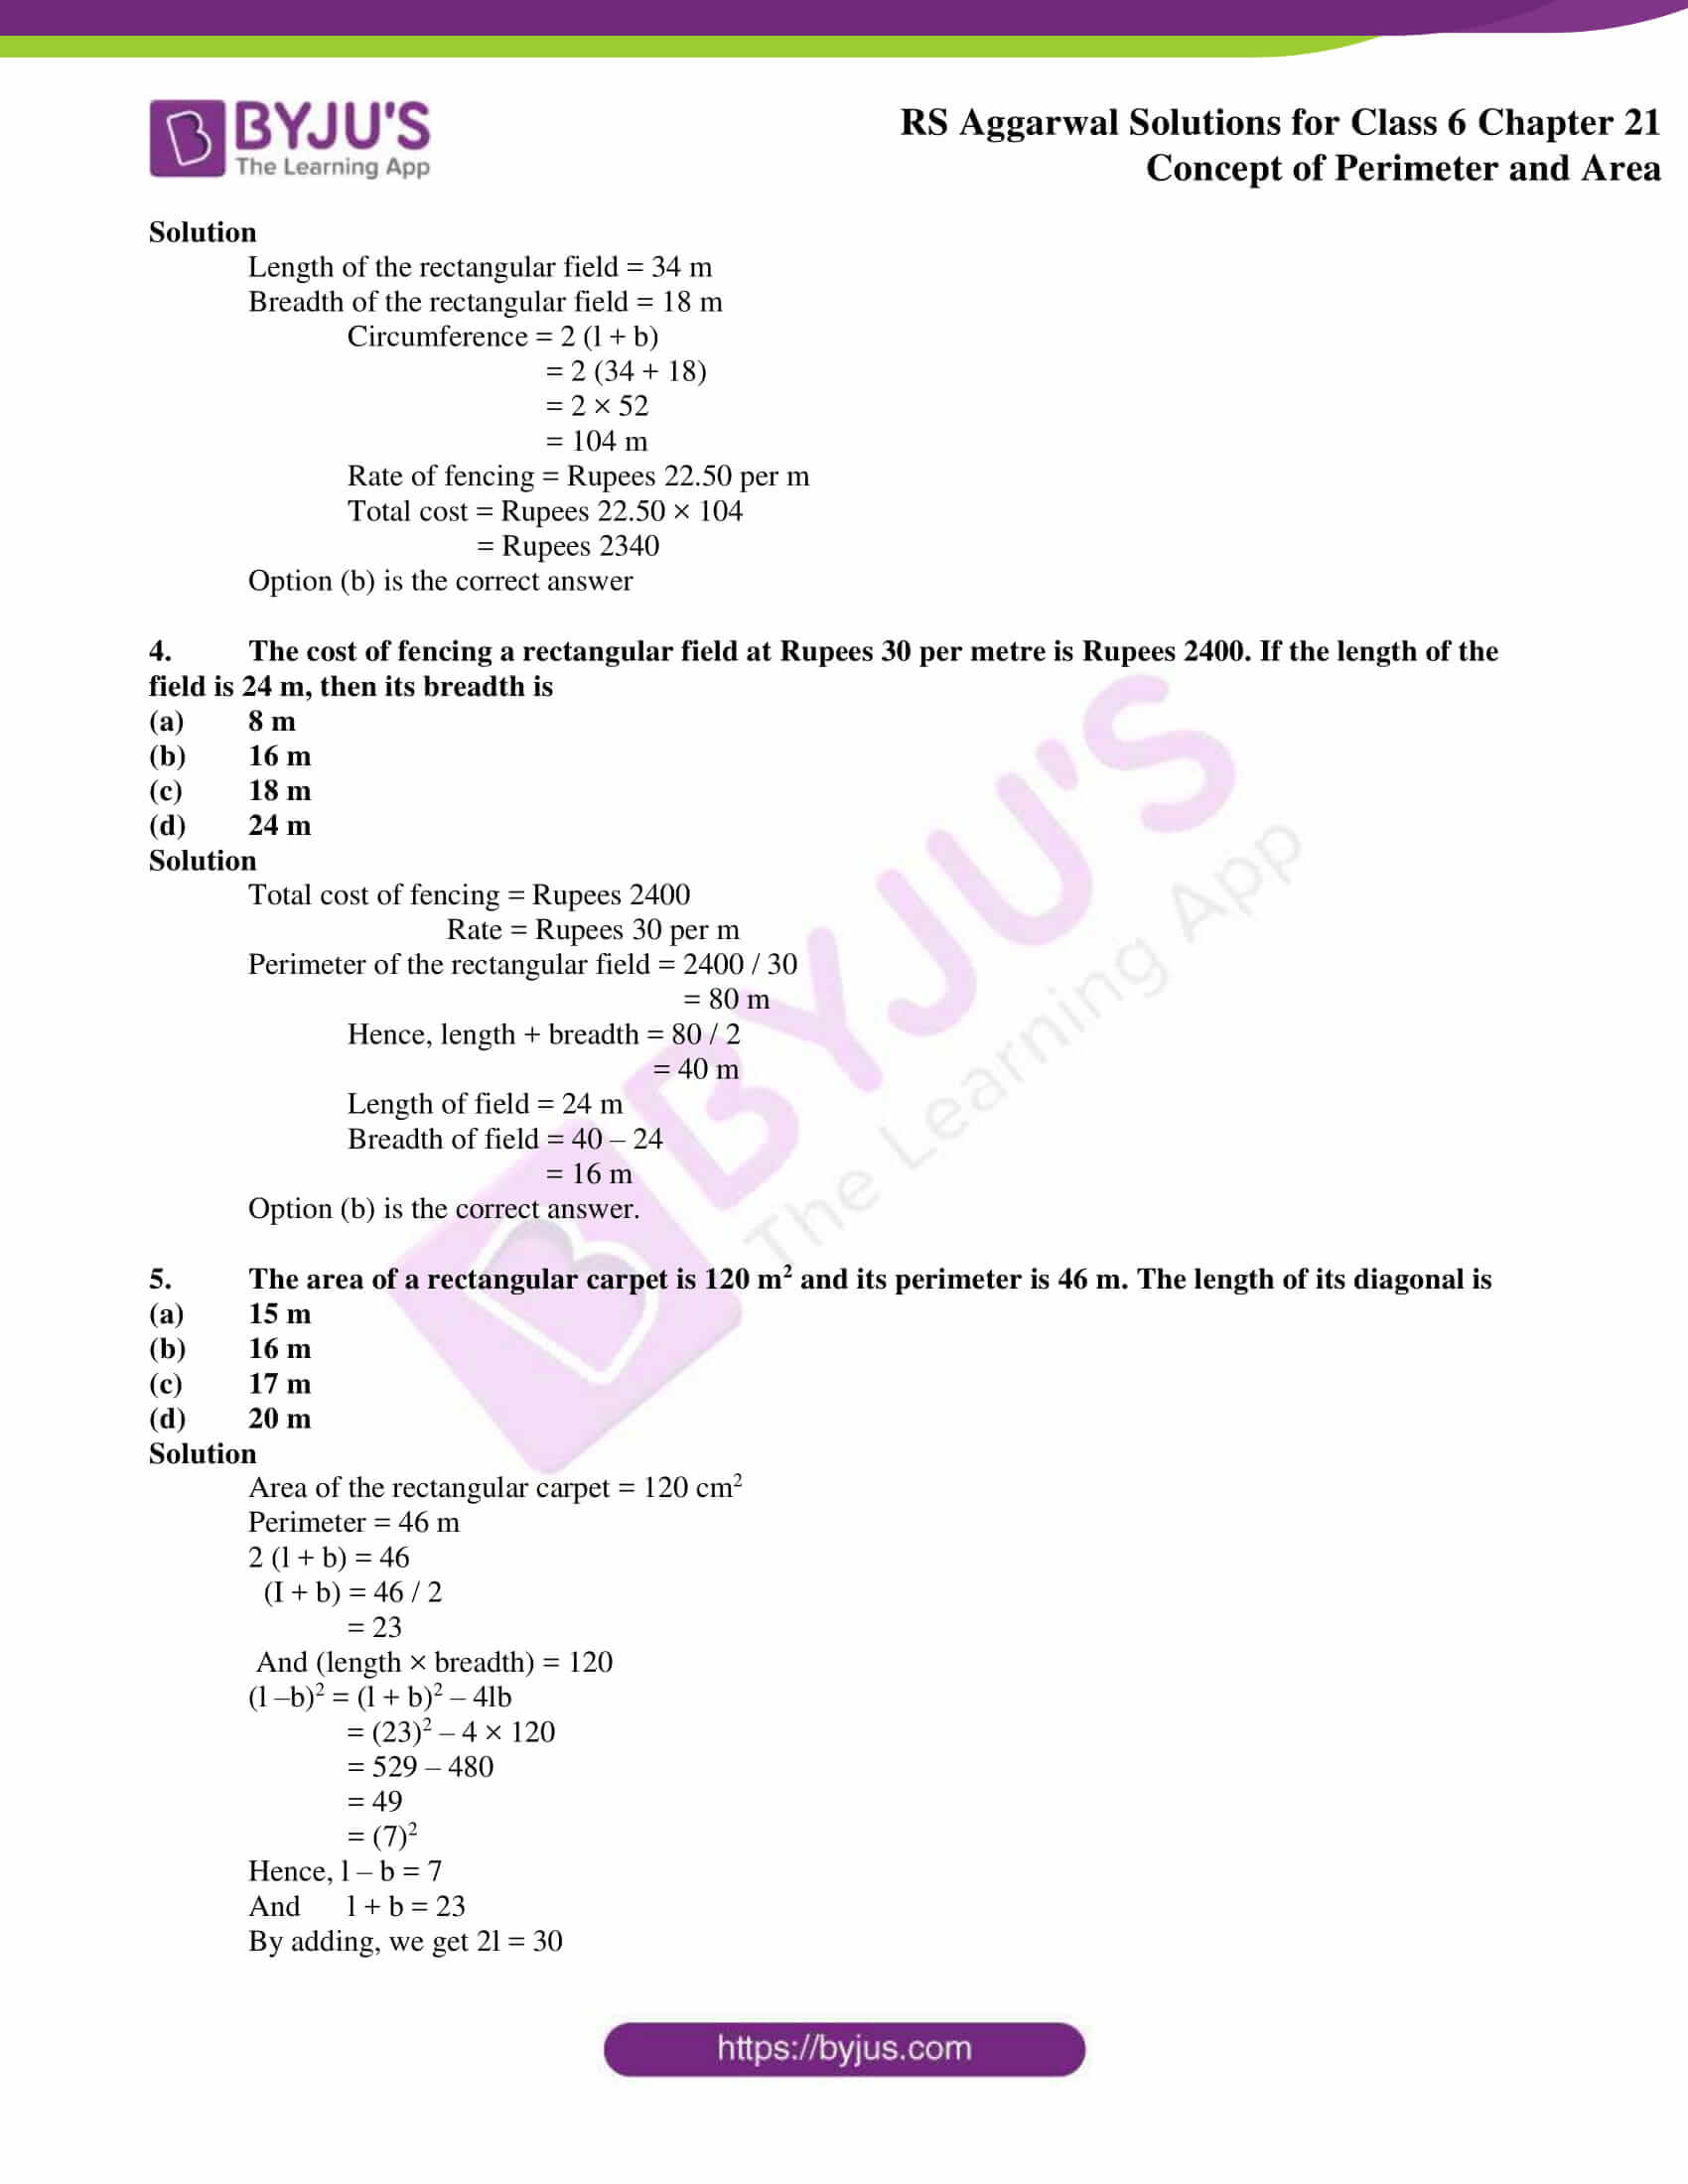 rs aggarwal solution class 6 maths chapter 21